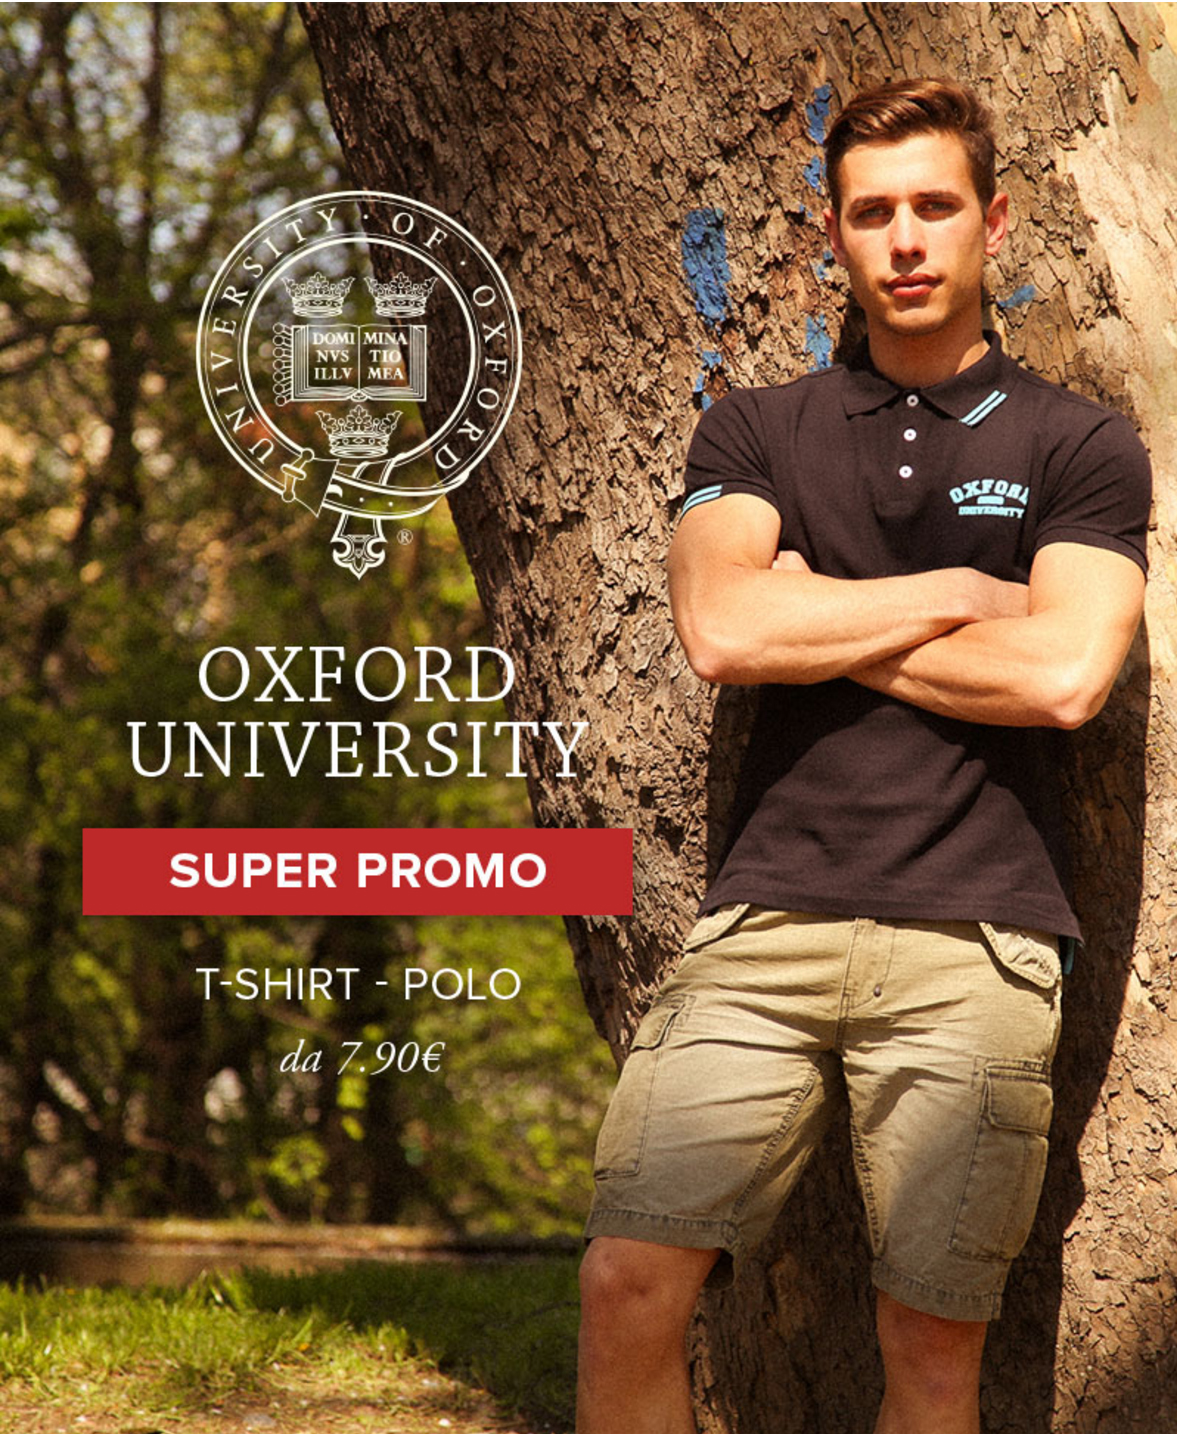 oxford university promo - Brandsdistribution